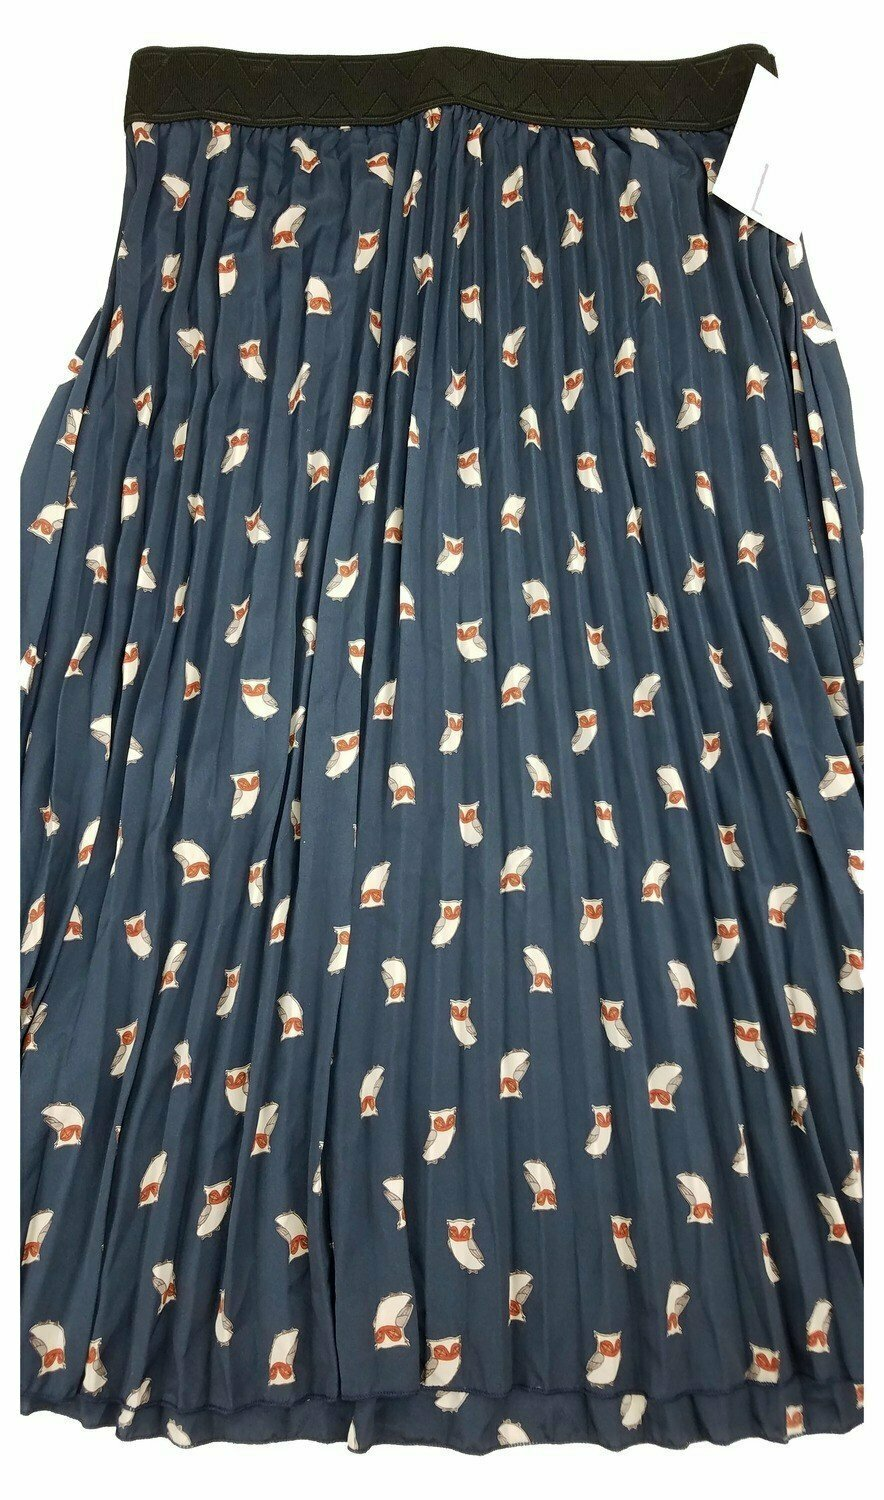 LuLaRoe Jill Navy with Grey Owls Large (L) Accordion Women's Skirt fits Sizes 14-15